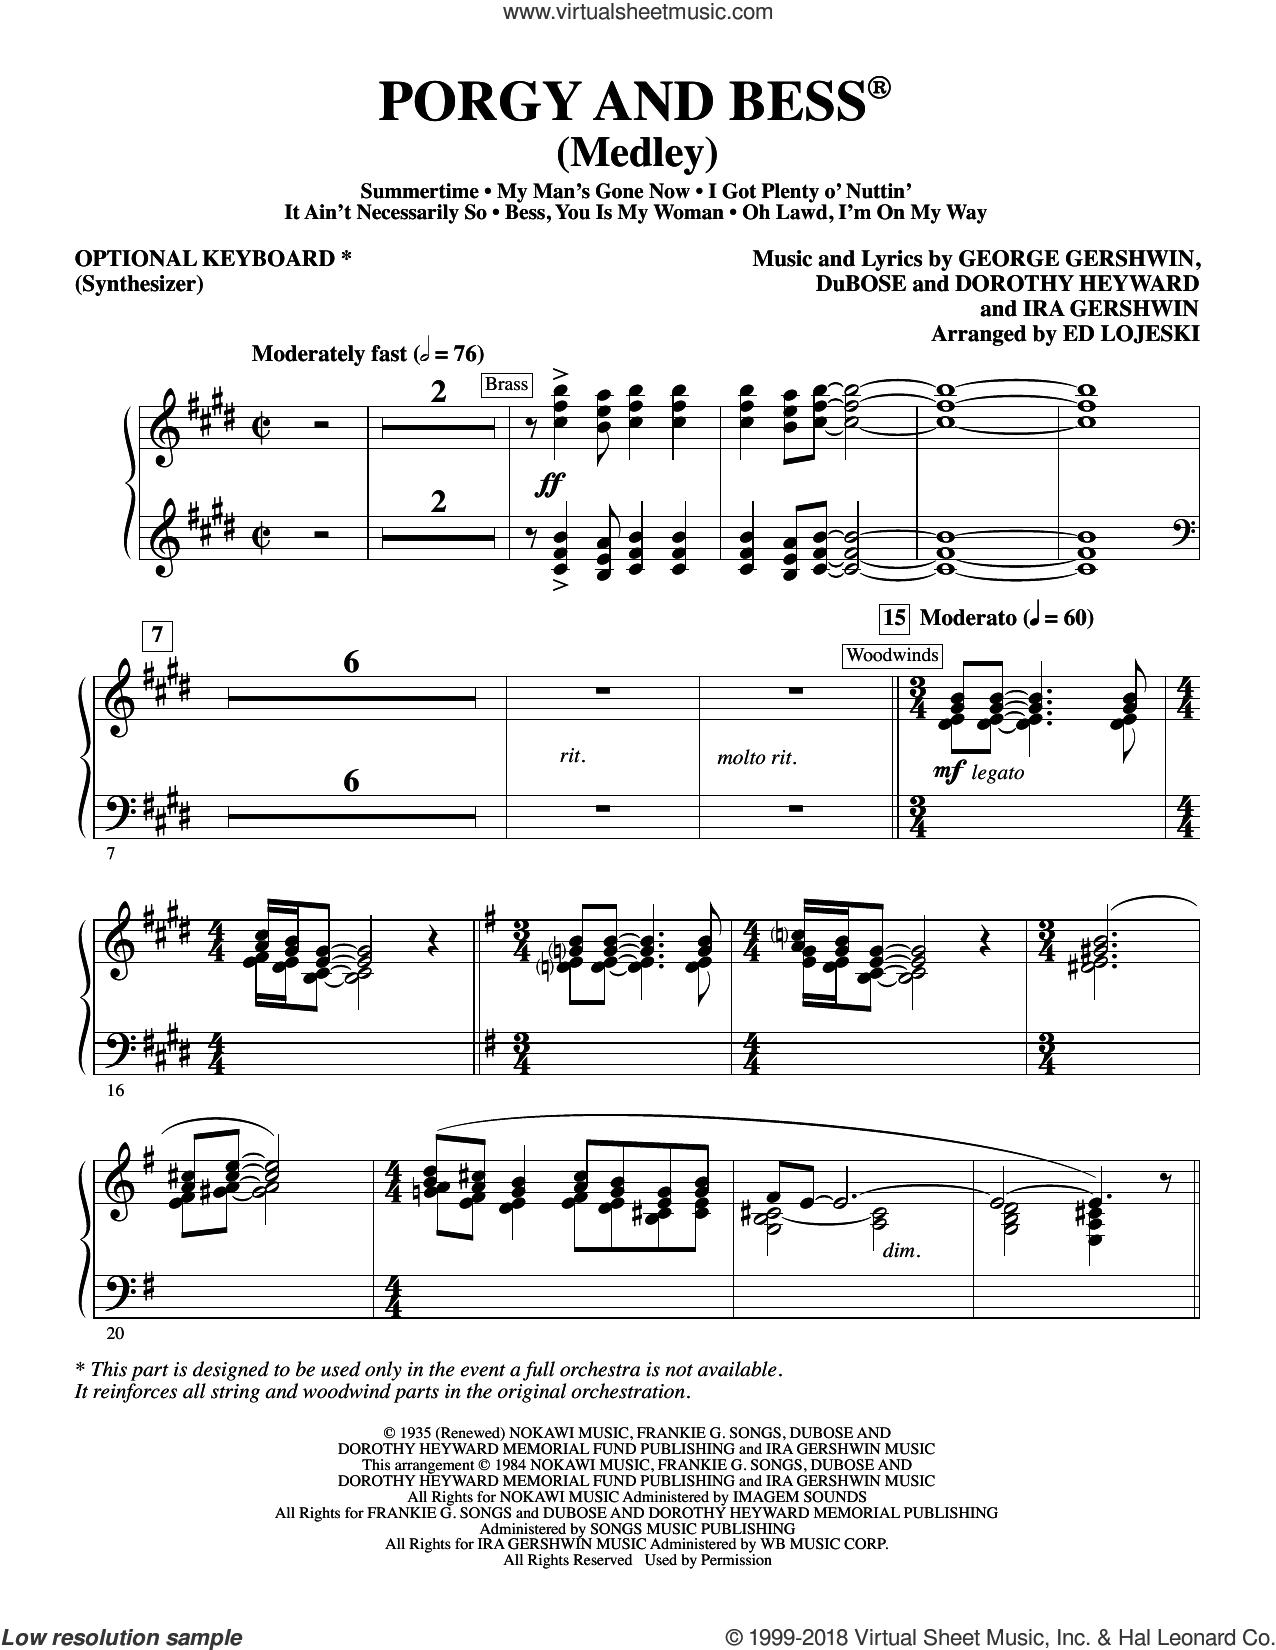 Porgy and Bess (Medley) sheet music for orchestra/band (synthesizer, opt.) by George Gershwin, Ed Lojeski, Dorothy Heyward, DuBose Heyward and Ira Gershwin, intermediate skill level